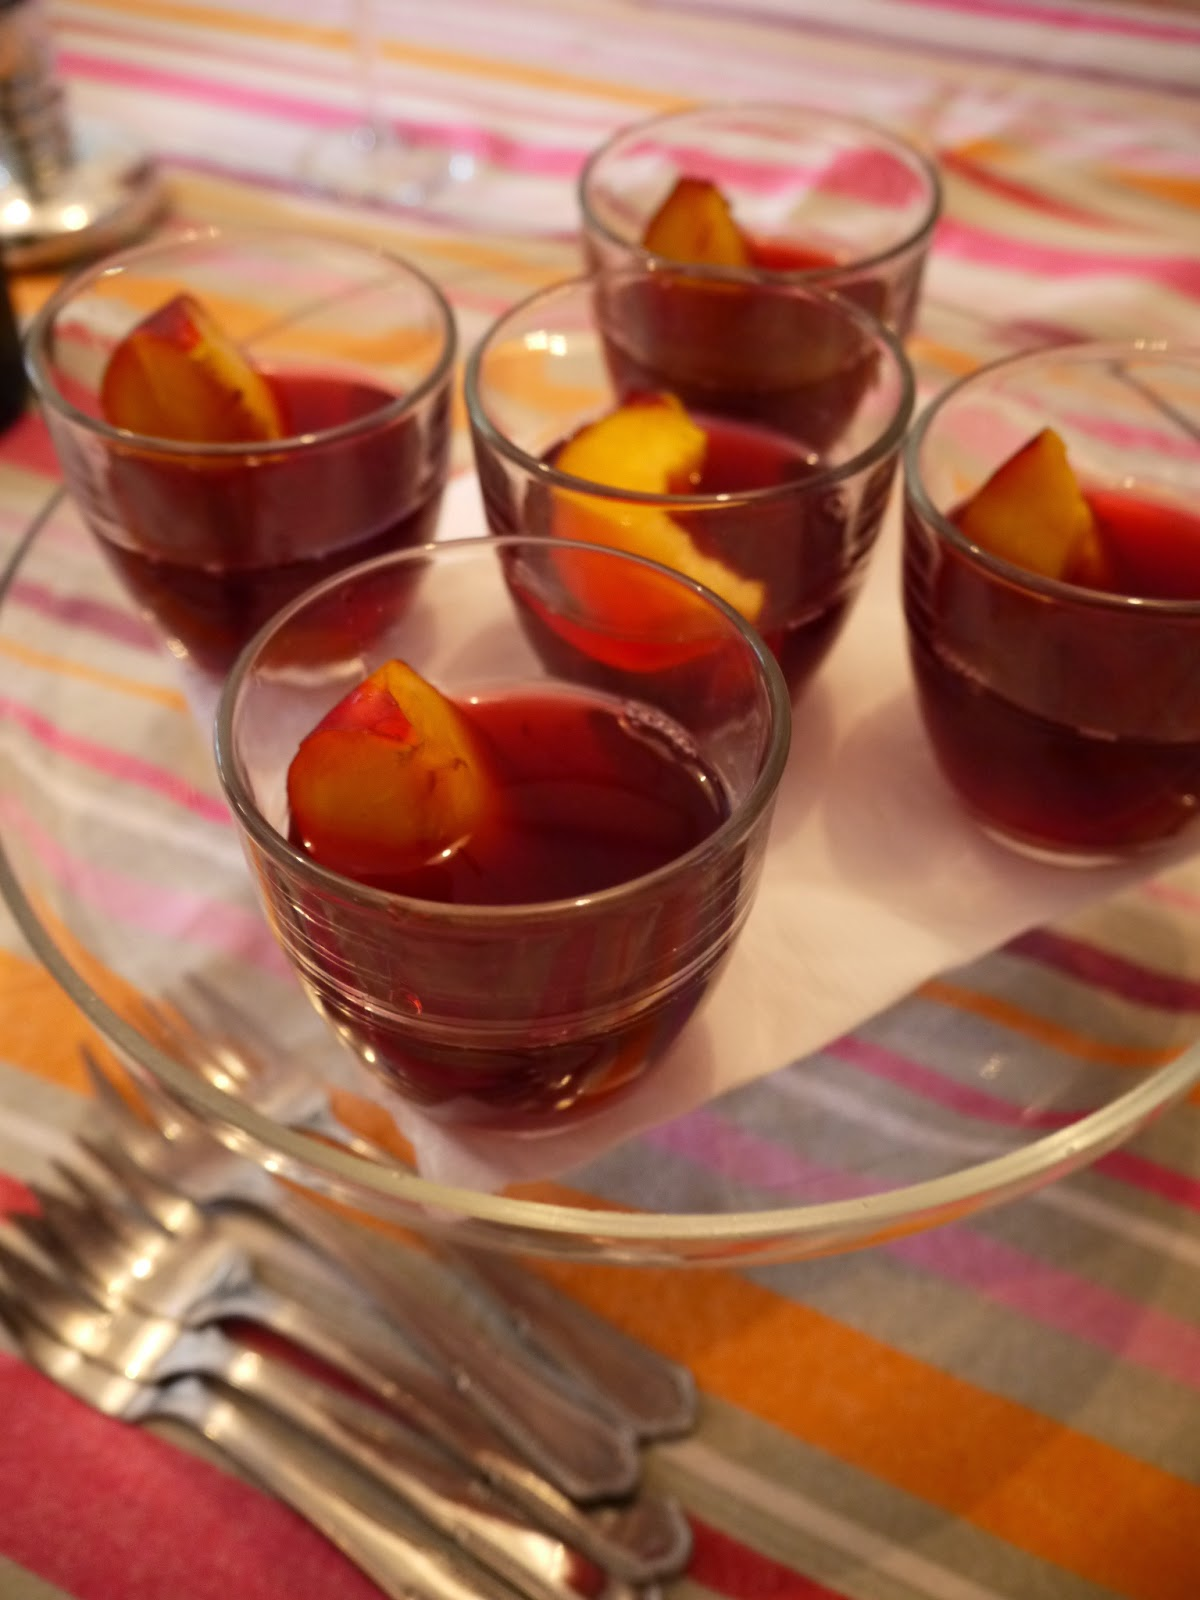 Sicilian peach in wine by Appetit Voyage